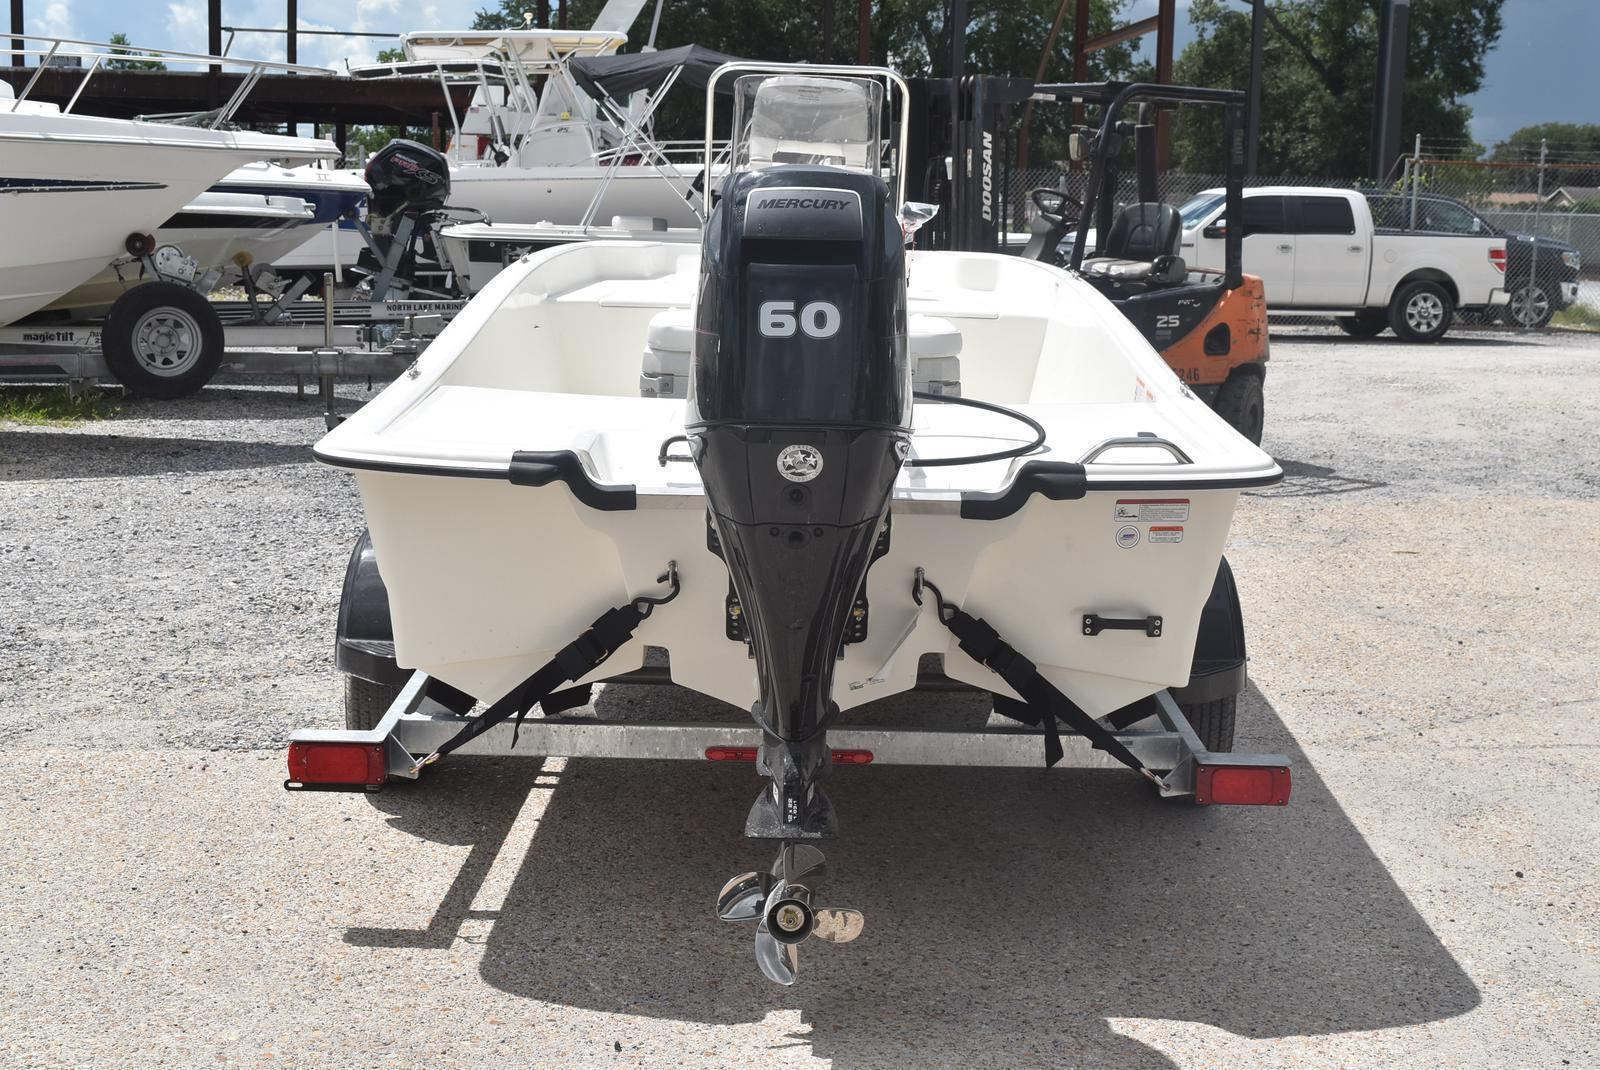 2020 Mako boat for sale, model of the boat is Pro Skiff 17, 75 ELPT & Image # 562 of 702